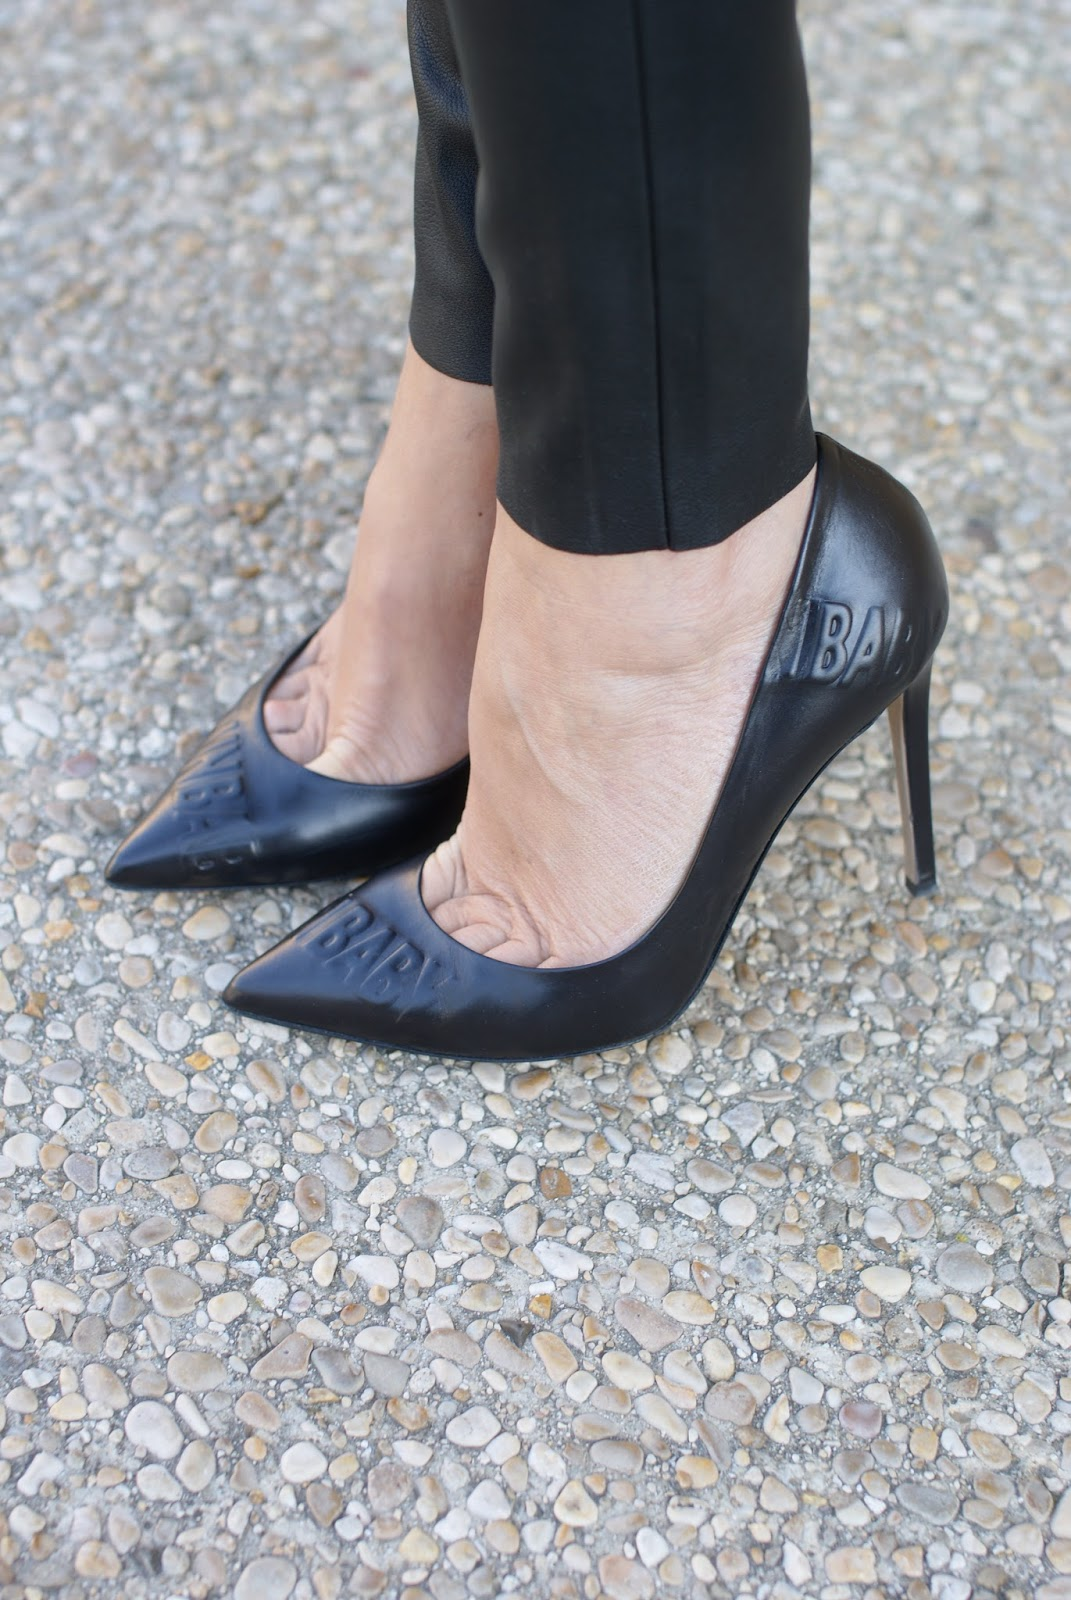 d8f9b1bfb Vogos fashion store: chic and sophisticated look | Fashion and Cookies |  Bloglovin'